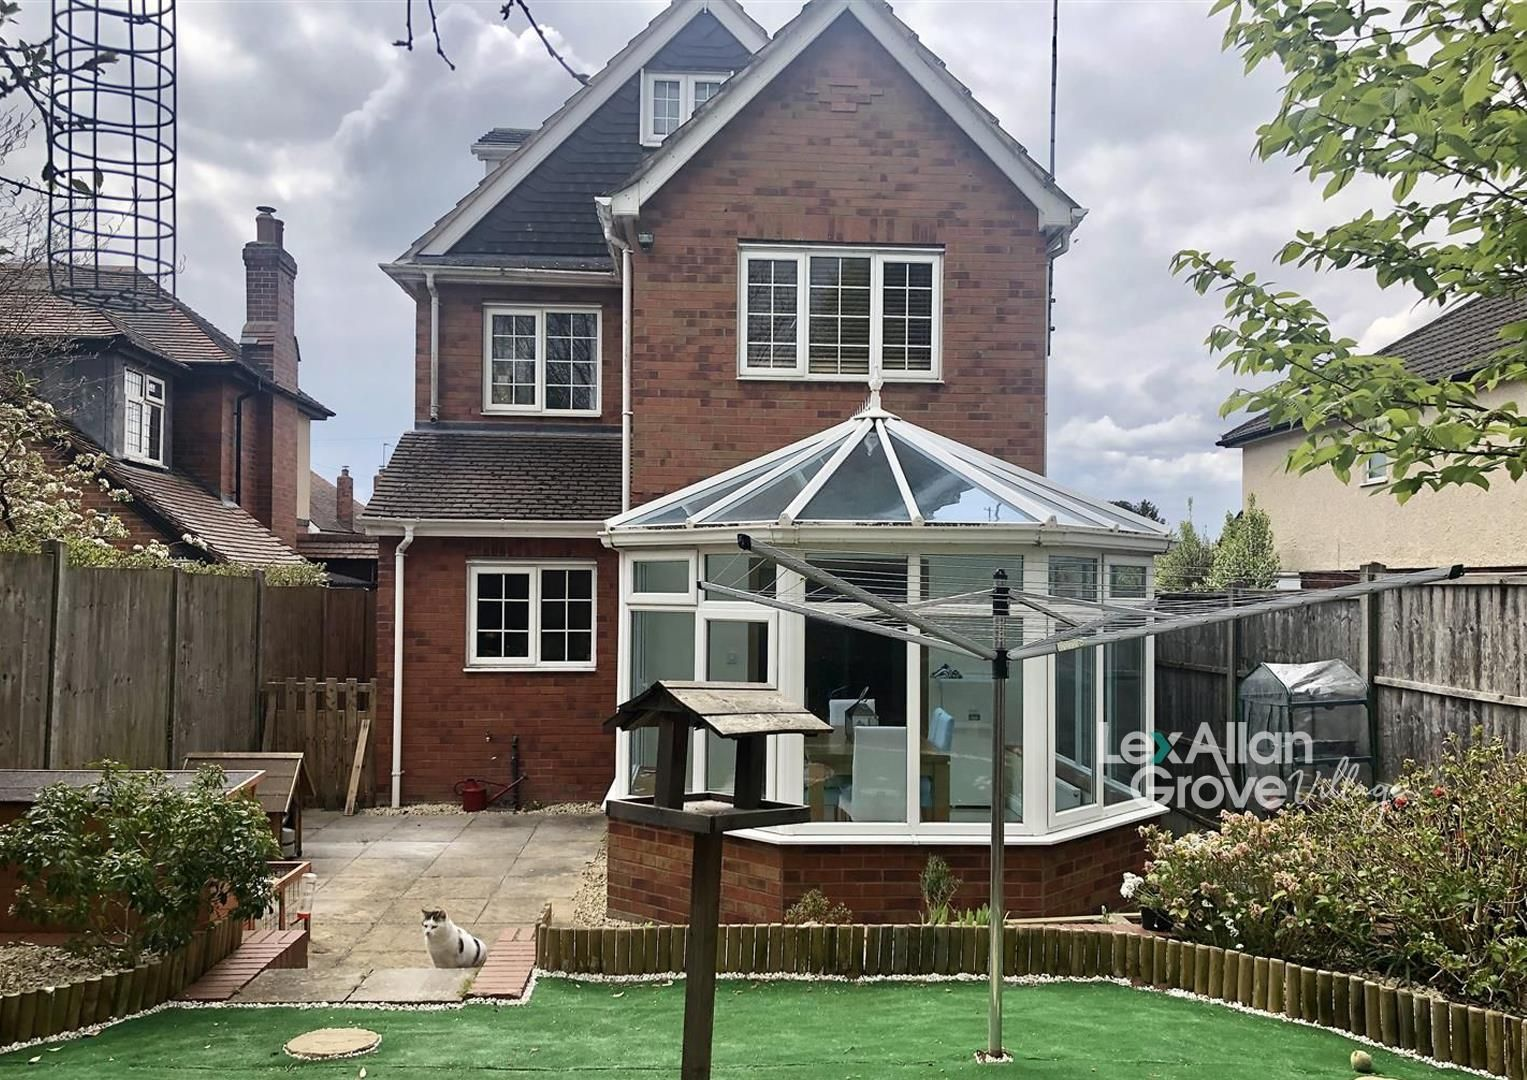 5 bed detached for sale in Hagley, DY8